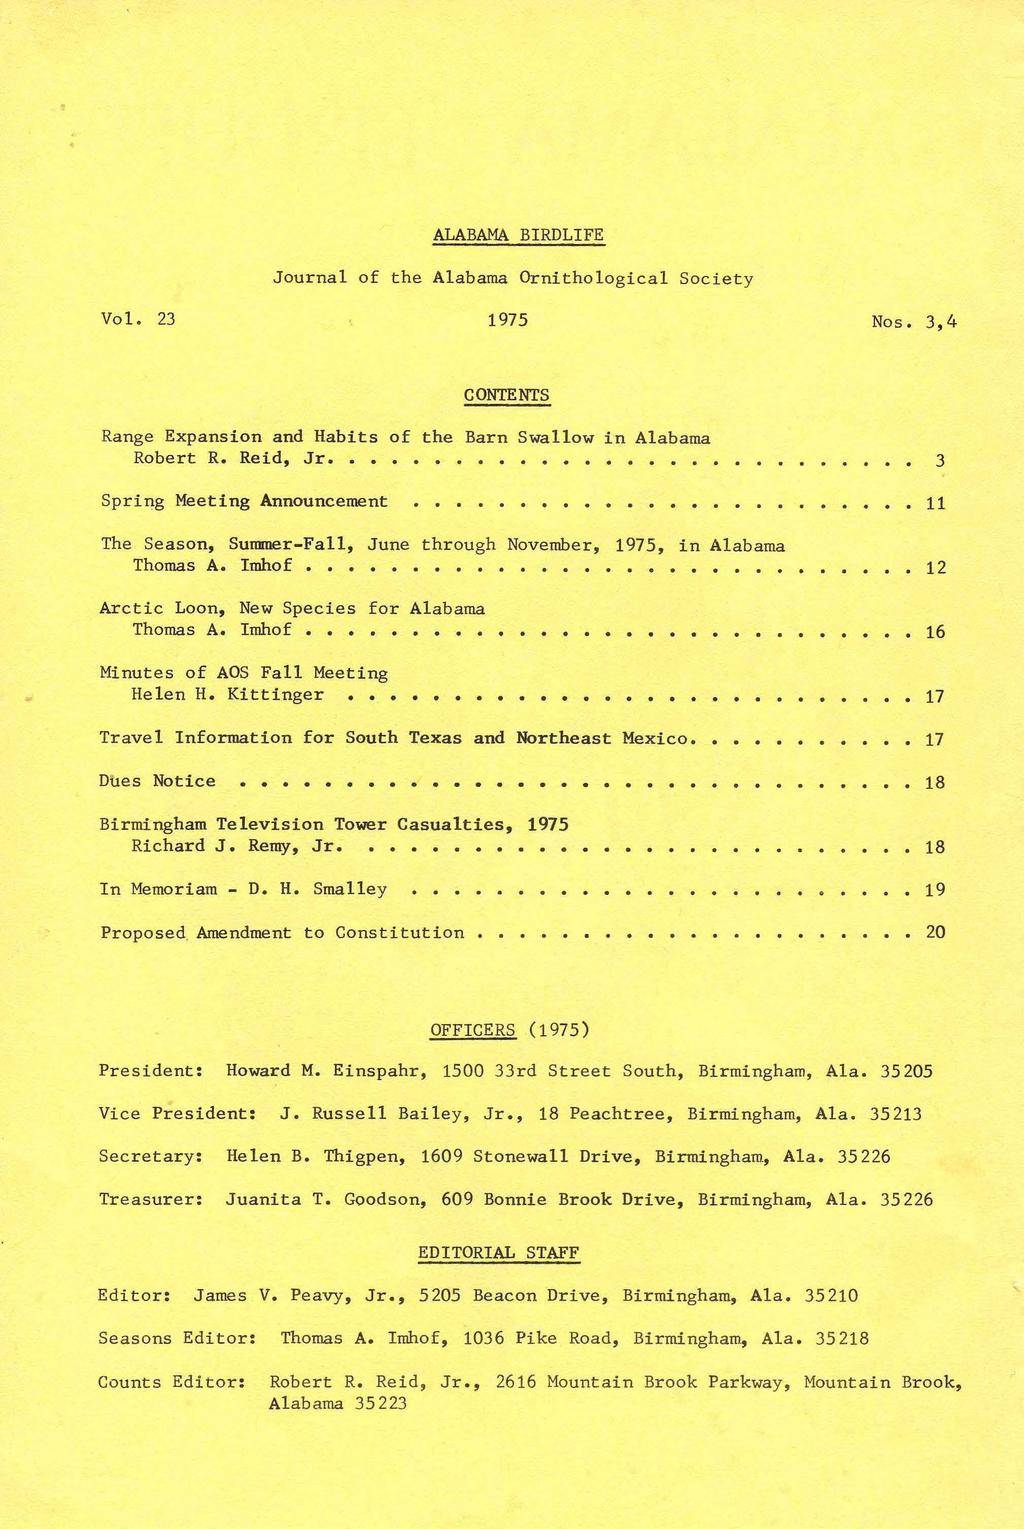 ALABAMA BIRDLIFE Journal of the Alabama Ornithological Society Vol. 23 1975 Nos. 3,4 CONTENTS Range Expansion and Habits of the Barn Swallow in Alabama Robert R. Reid, Jr.